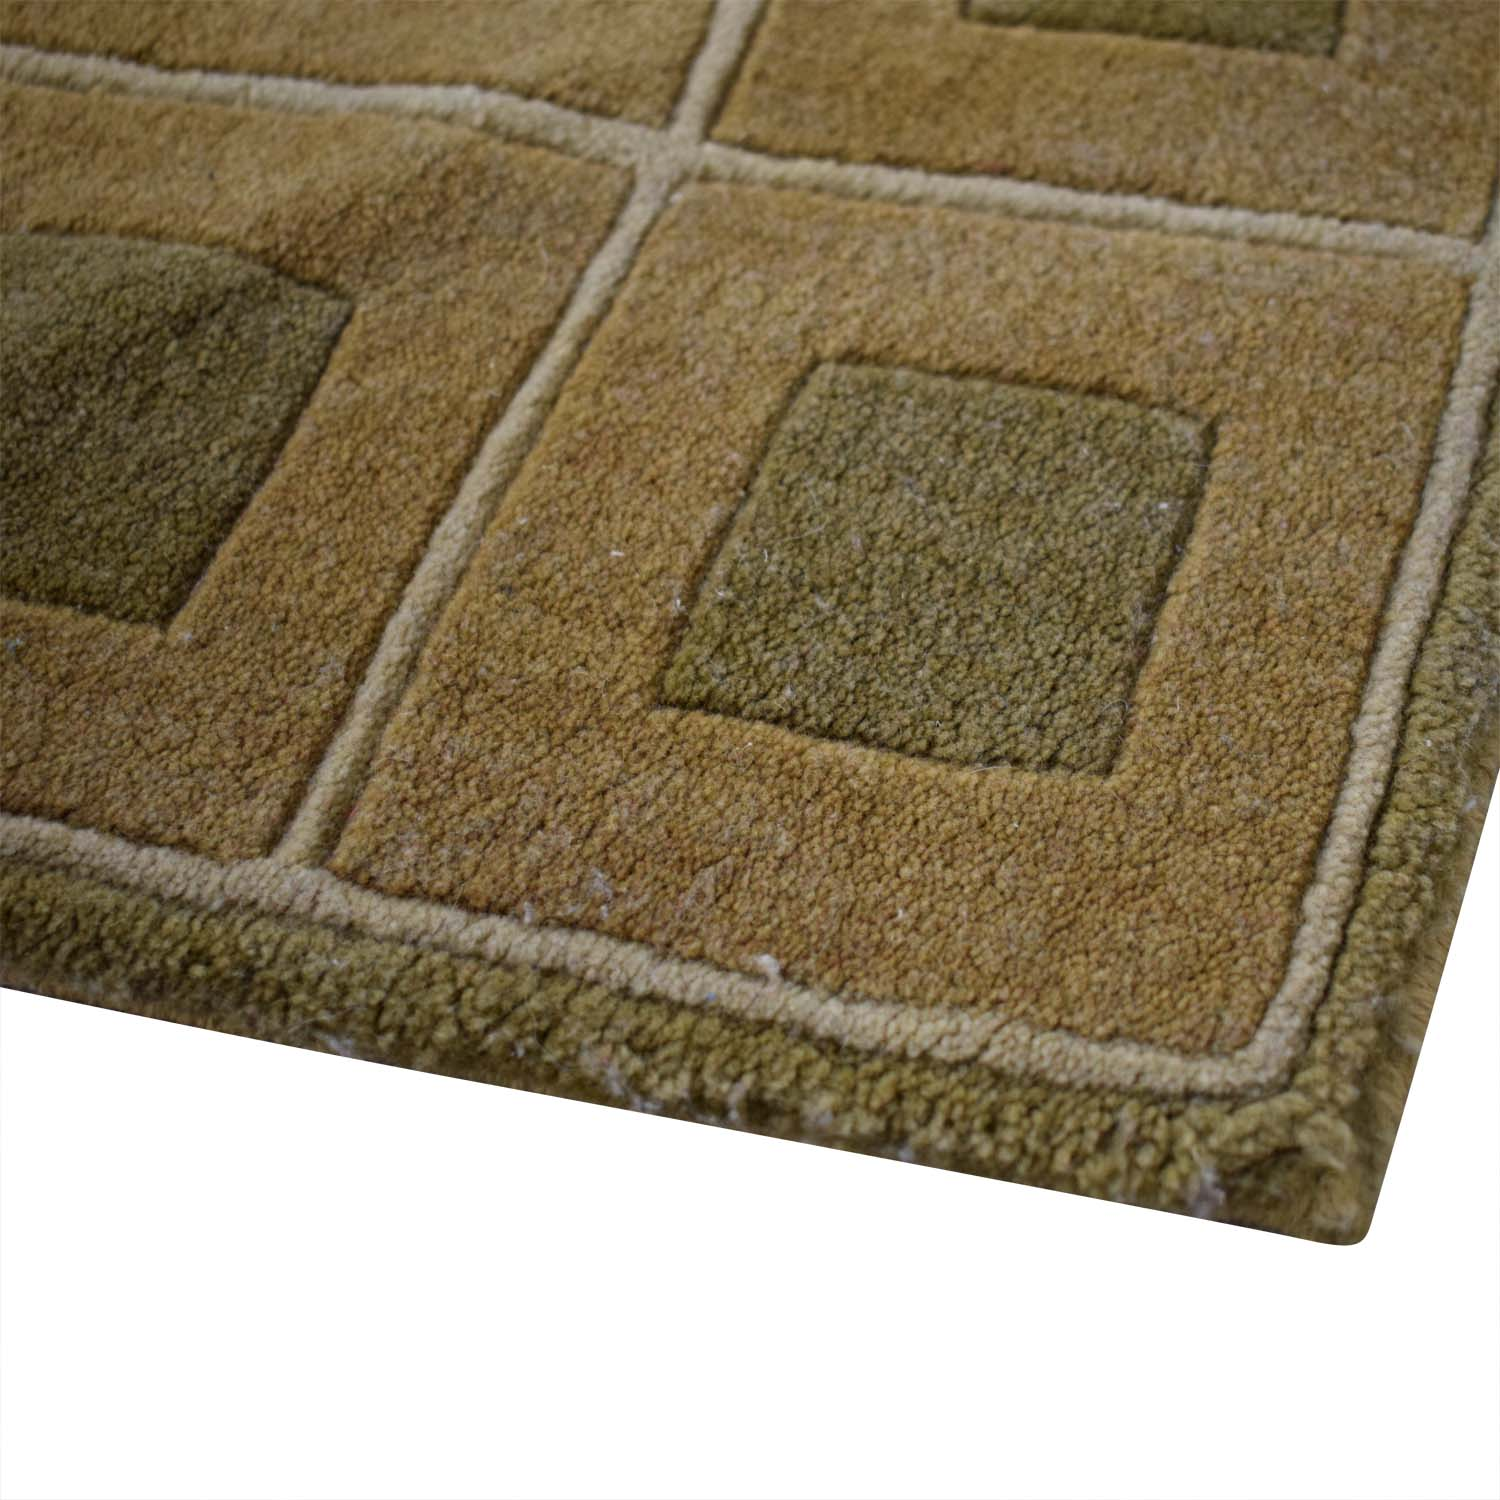 shop ABC Carpet & Home Runner Rug ABC Carpet & Home Rugs